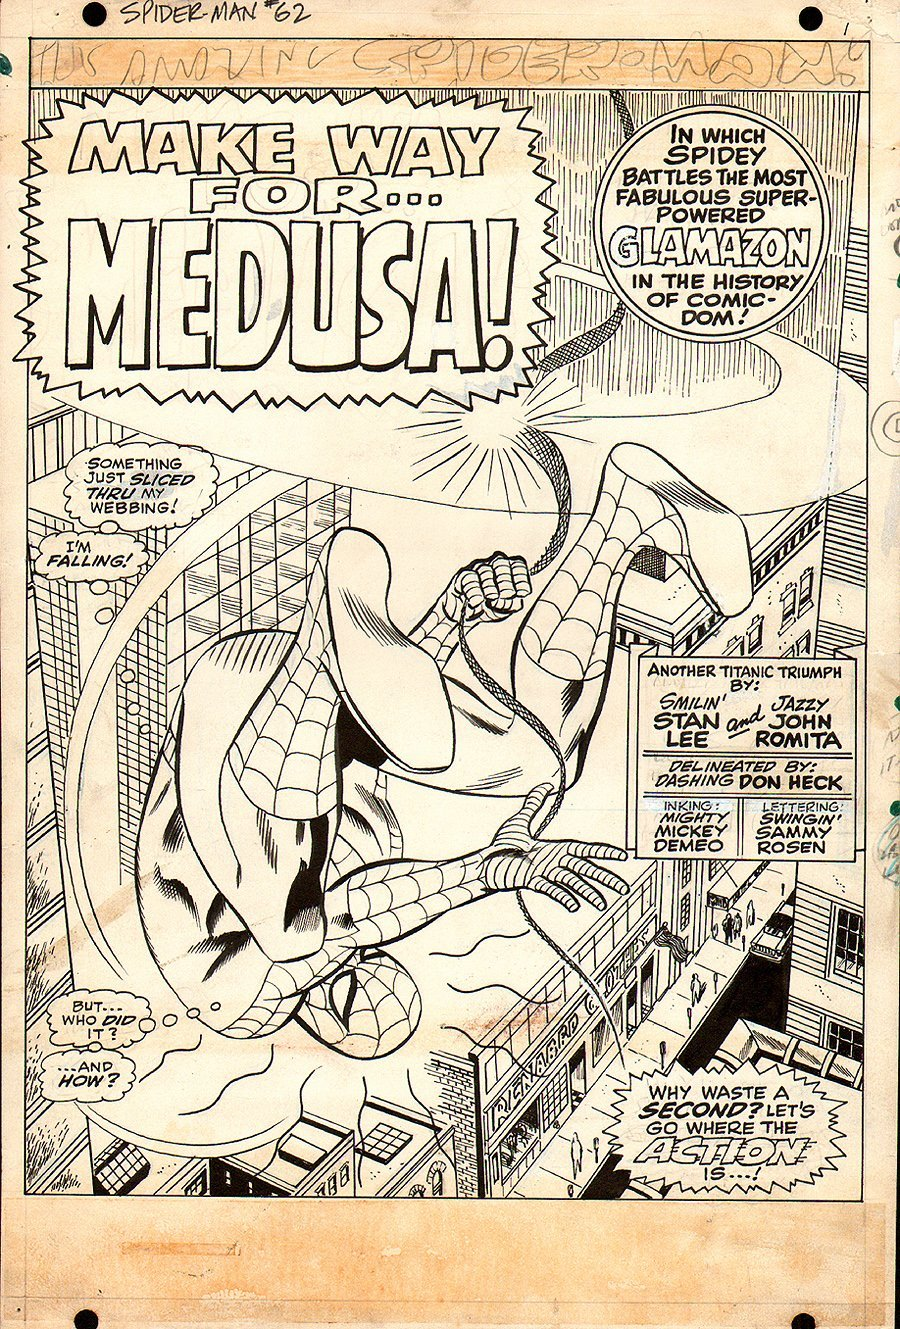 """John Romita and Don Heck pencils with Mike Esposito inks, from the CLASSIC 1968 AMAZING SPIDER-MAN story titled: """"Make Was for MEDUSA!"""""""